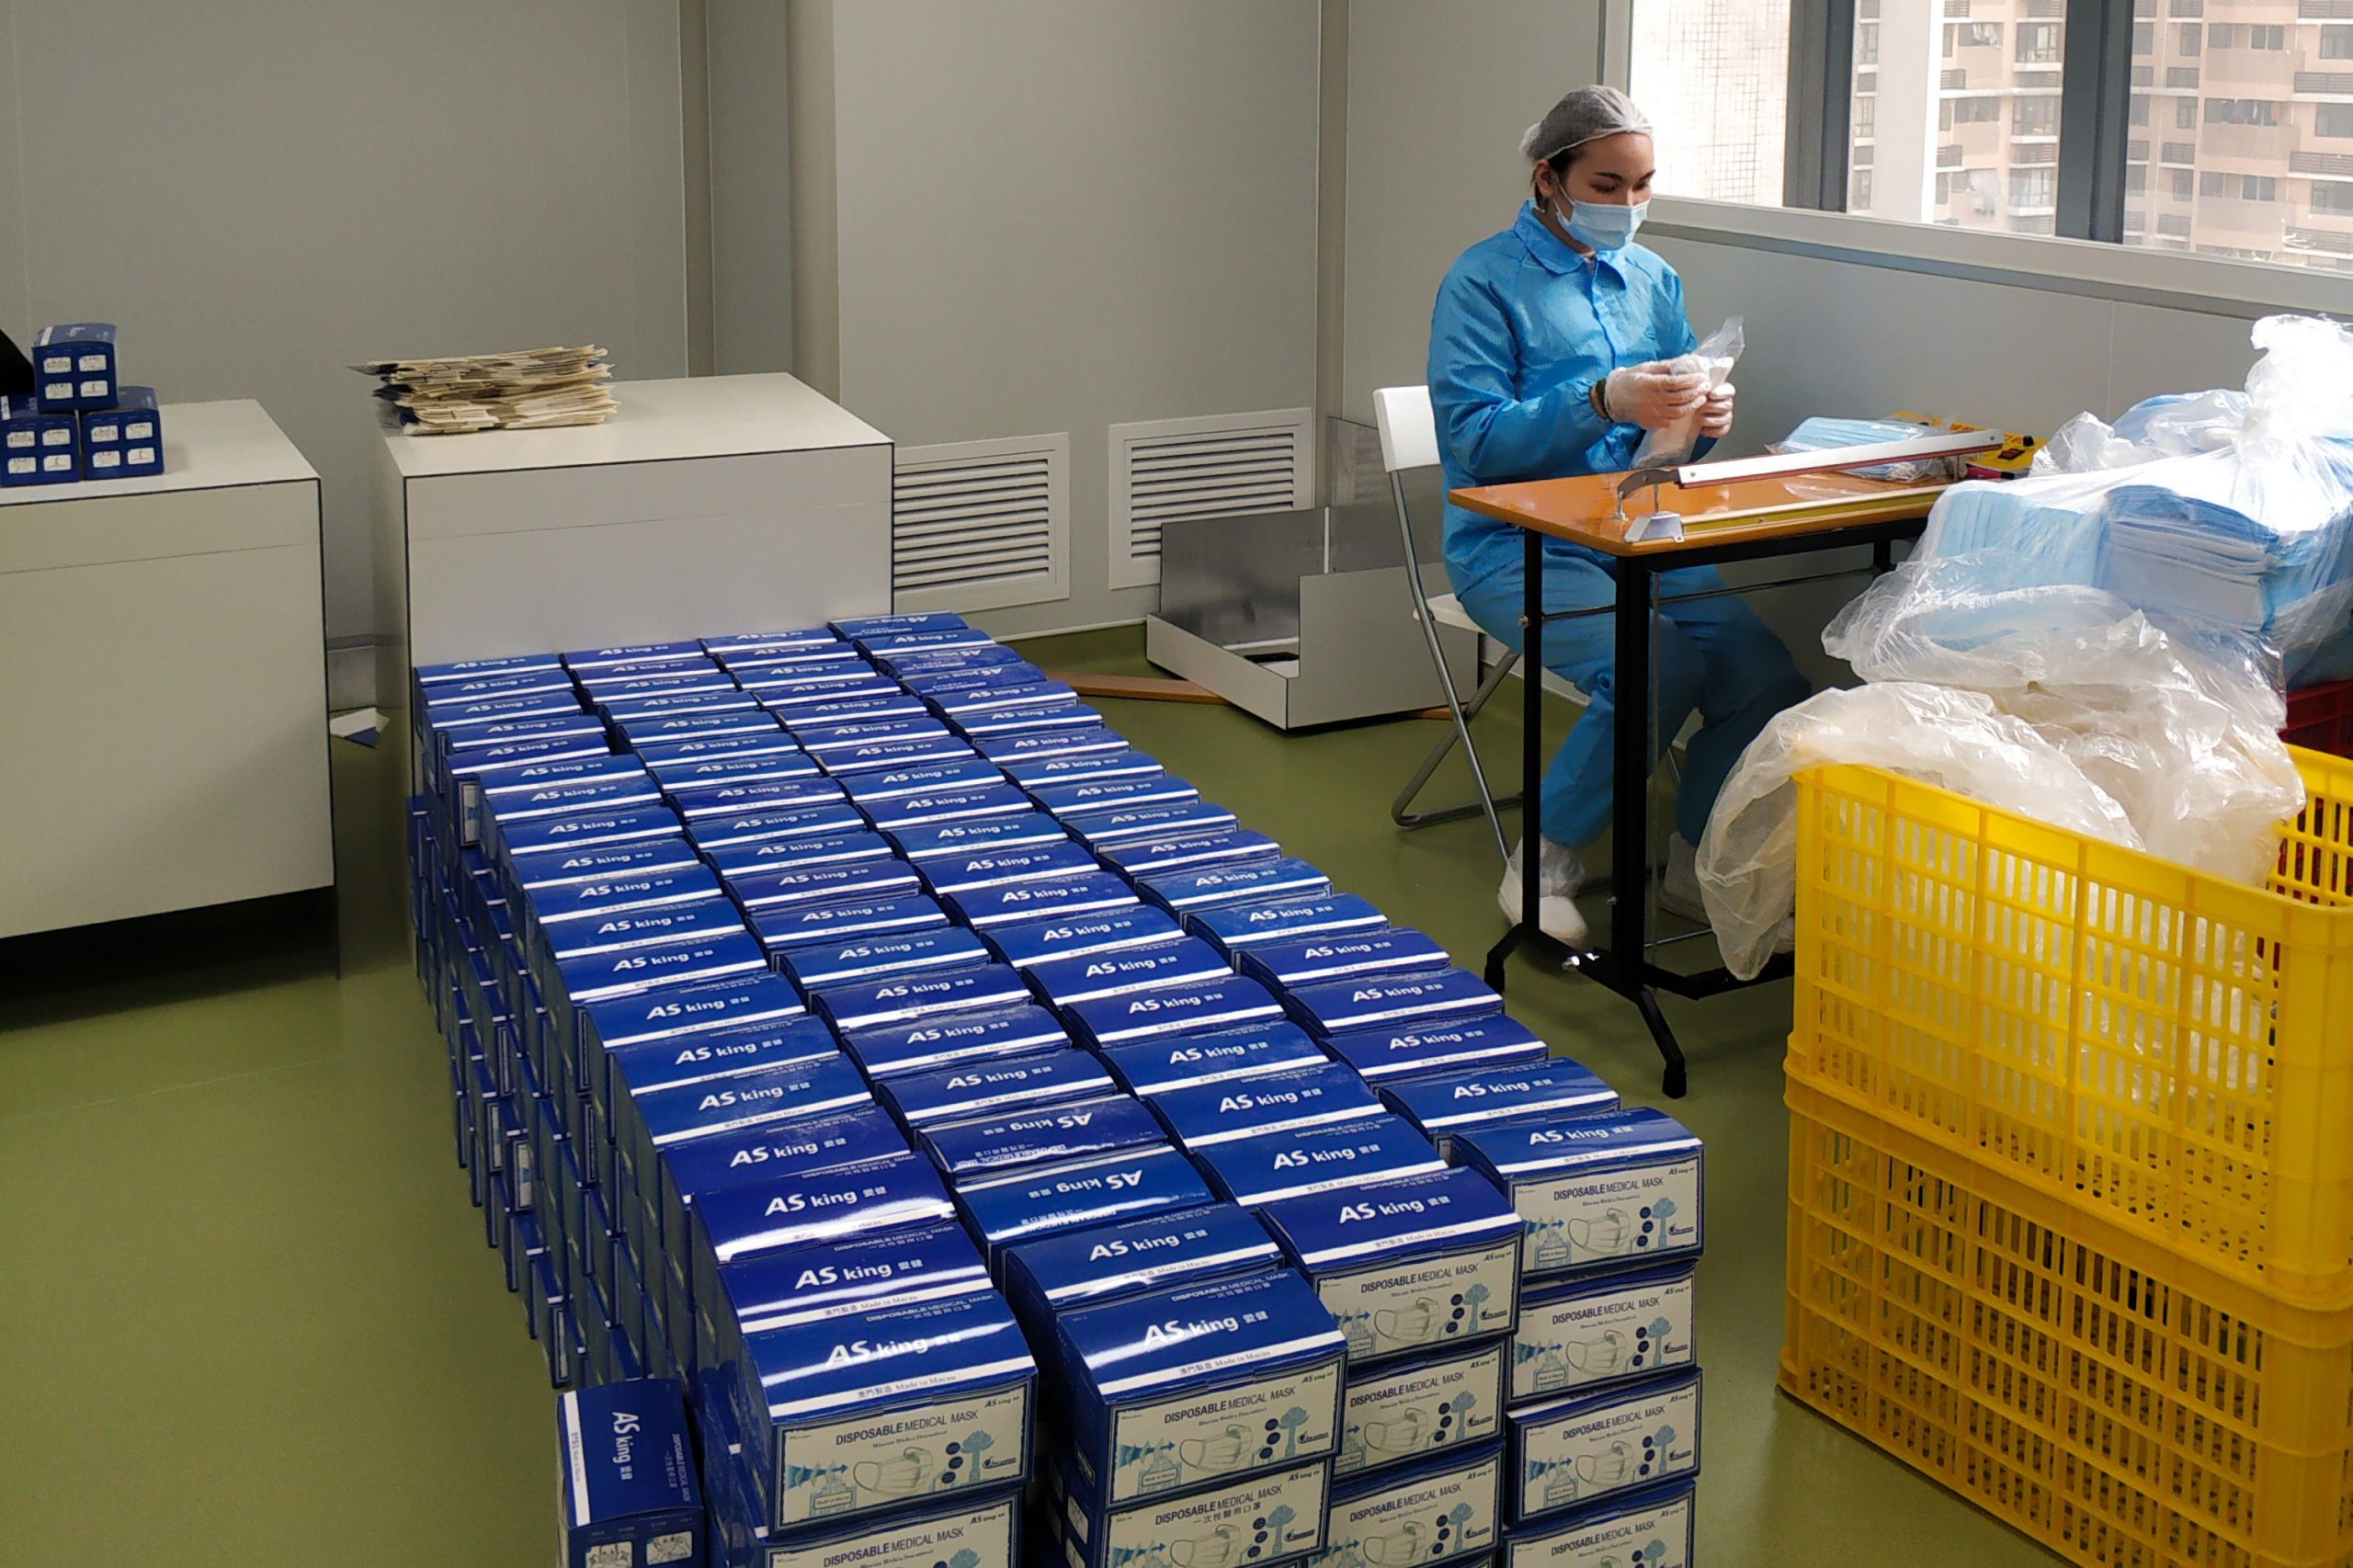 AS-King Facemasks being packed into boxes | Photo Courtesy of AS-King Medical Products